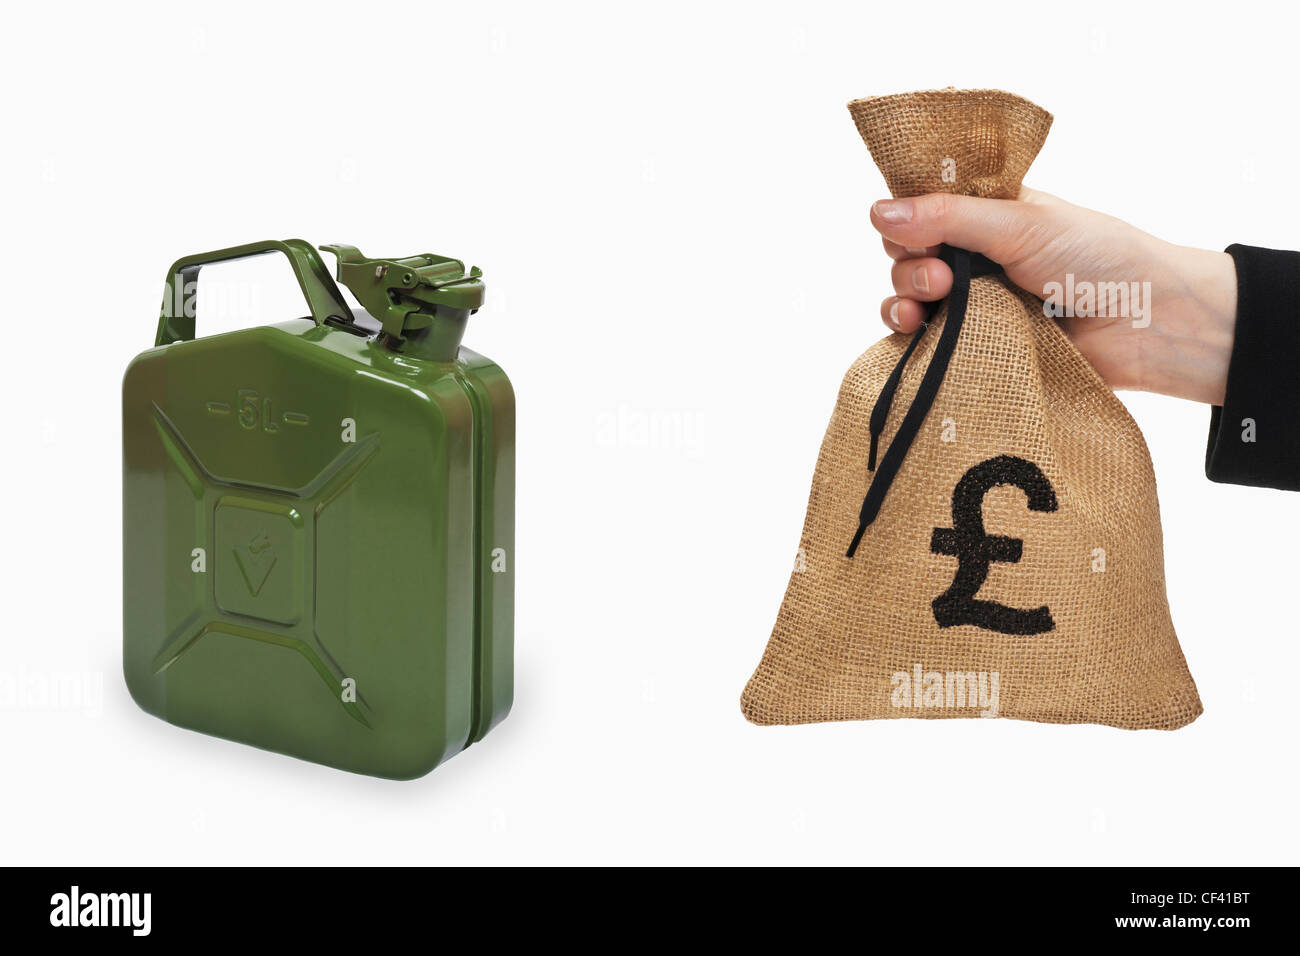 A money bag with a Pound currency sign is held in the hand. Near by is a green 5 liters gasoline canister of metal. - Stock Image